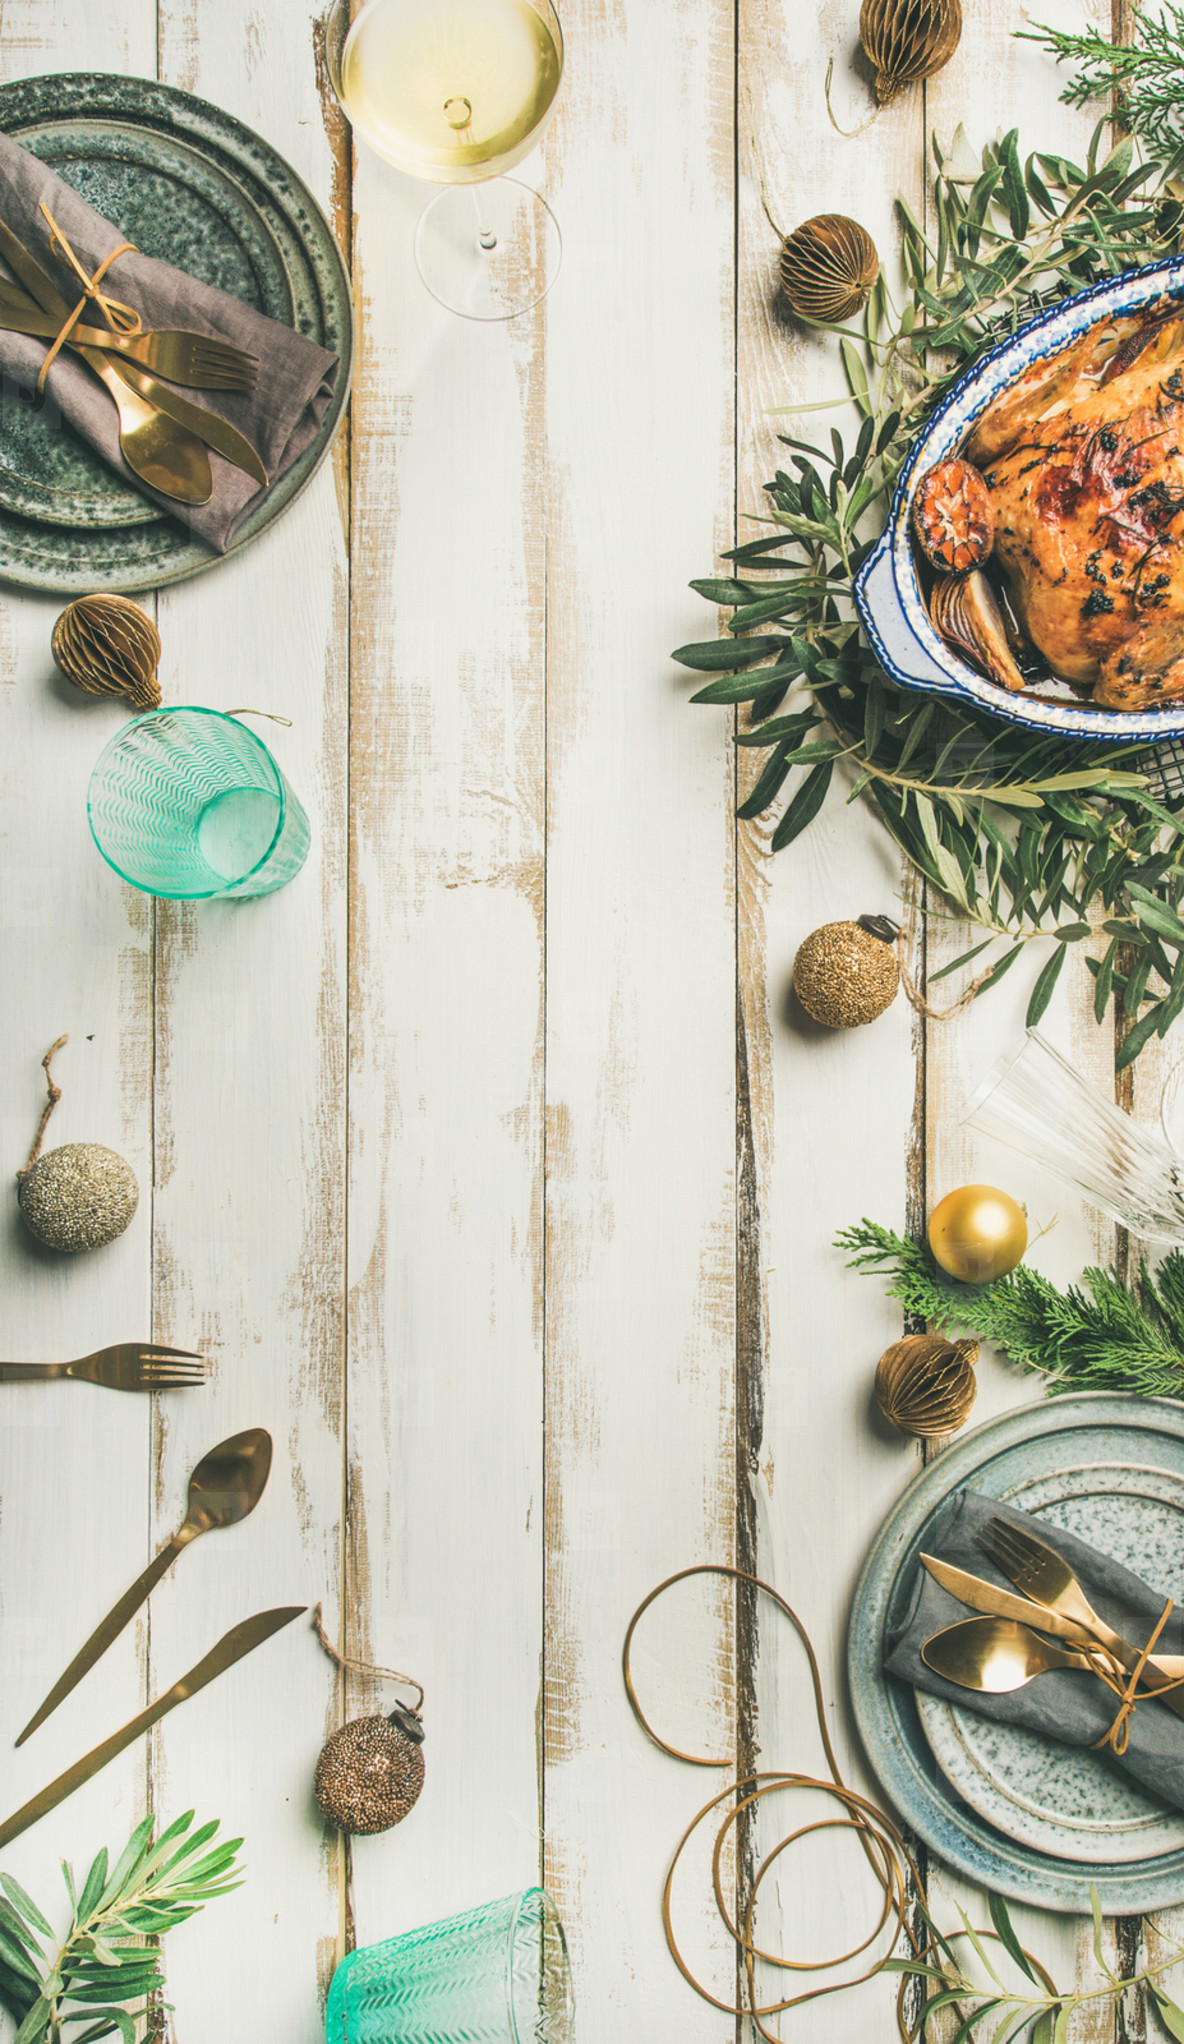 Christmas or New Year celebration table setting over wooden background